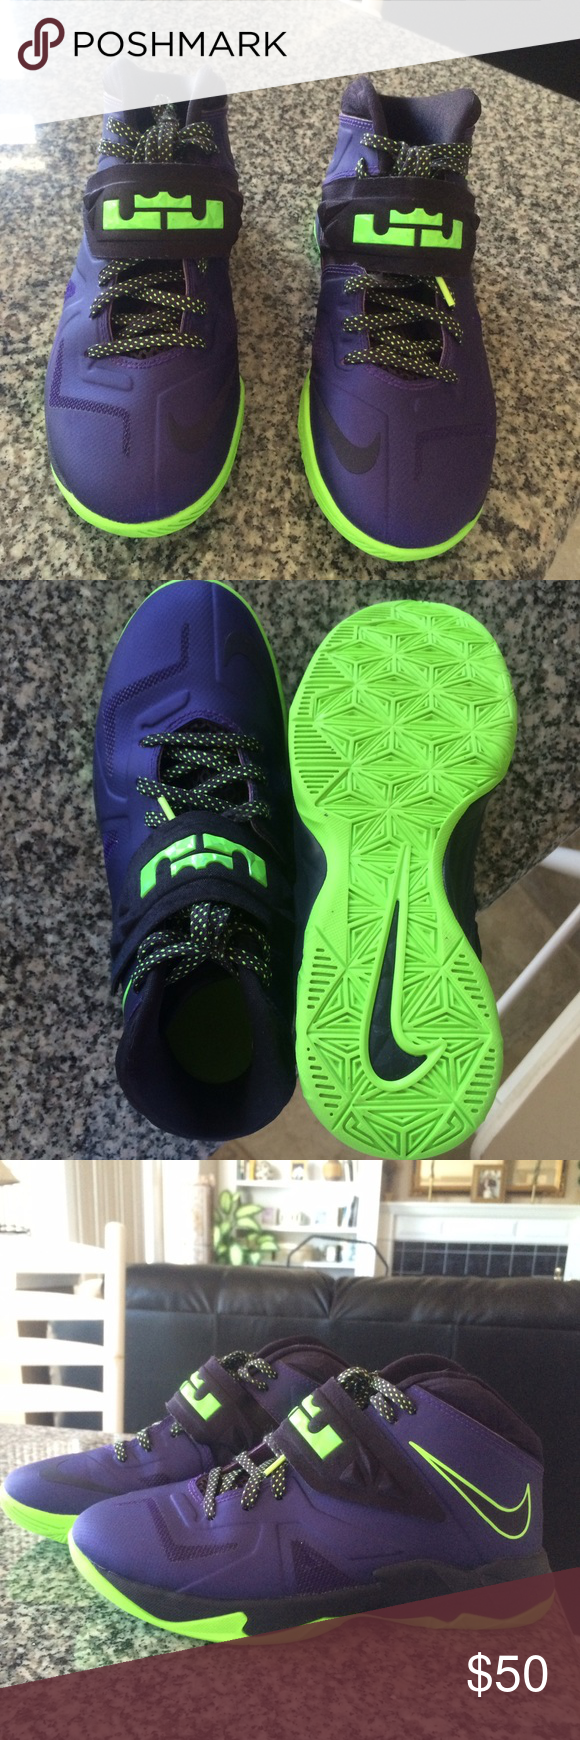 75f409e3a851 LeBron soldier 7 LeBron James soldier VII. Purple and green. Worn less than  15 times